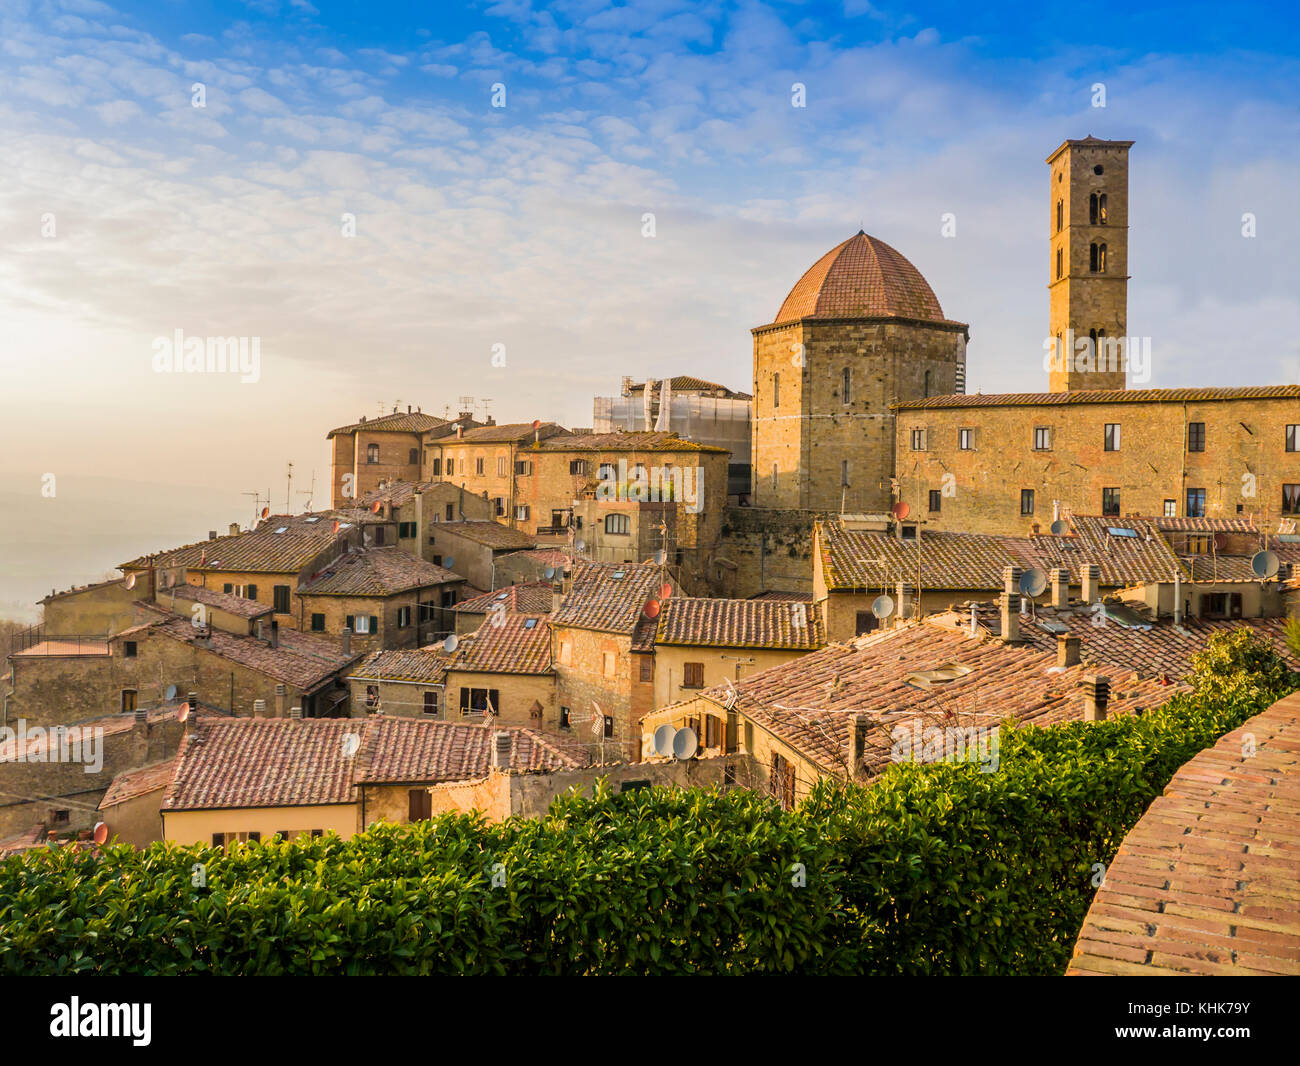 Panoramic view of Volterra, Tuscan village of Etruscan origin, famous for its alabaster, Italy - Stock Image